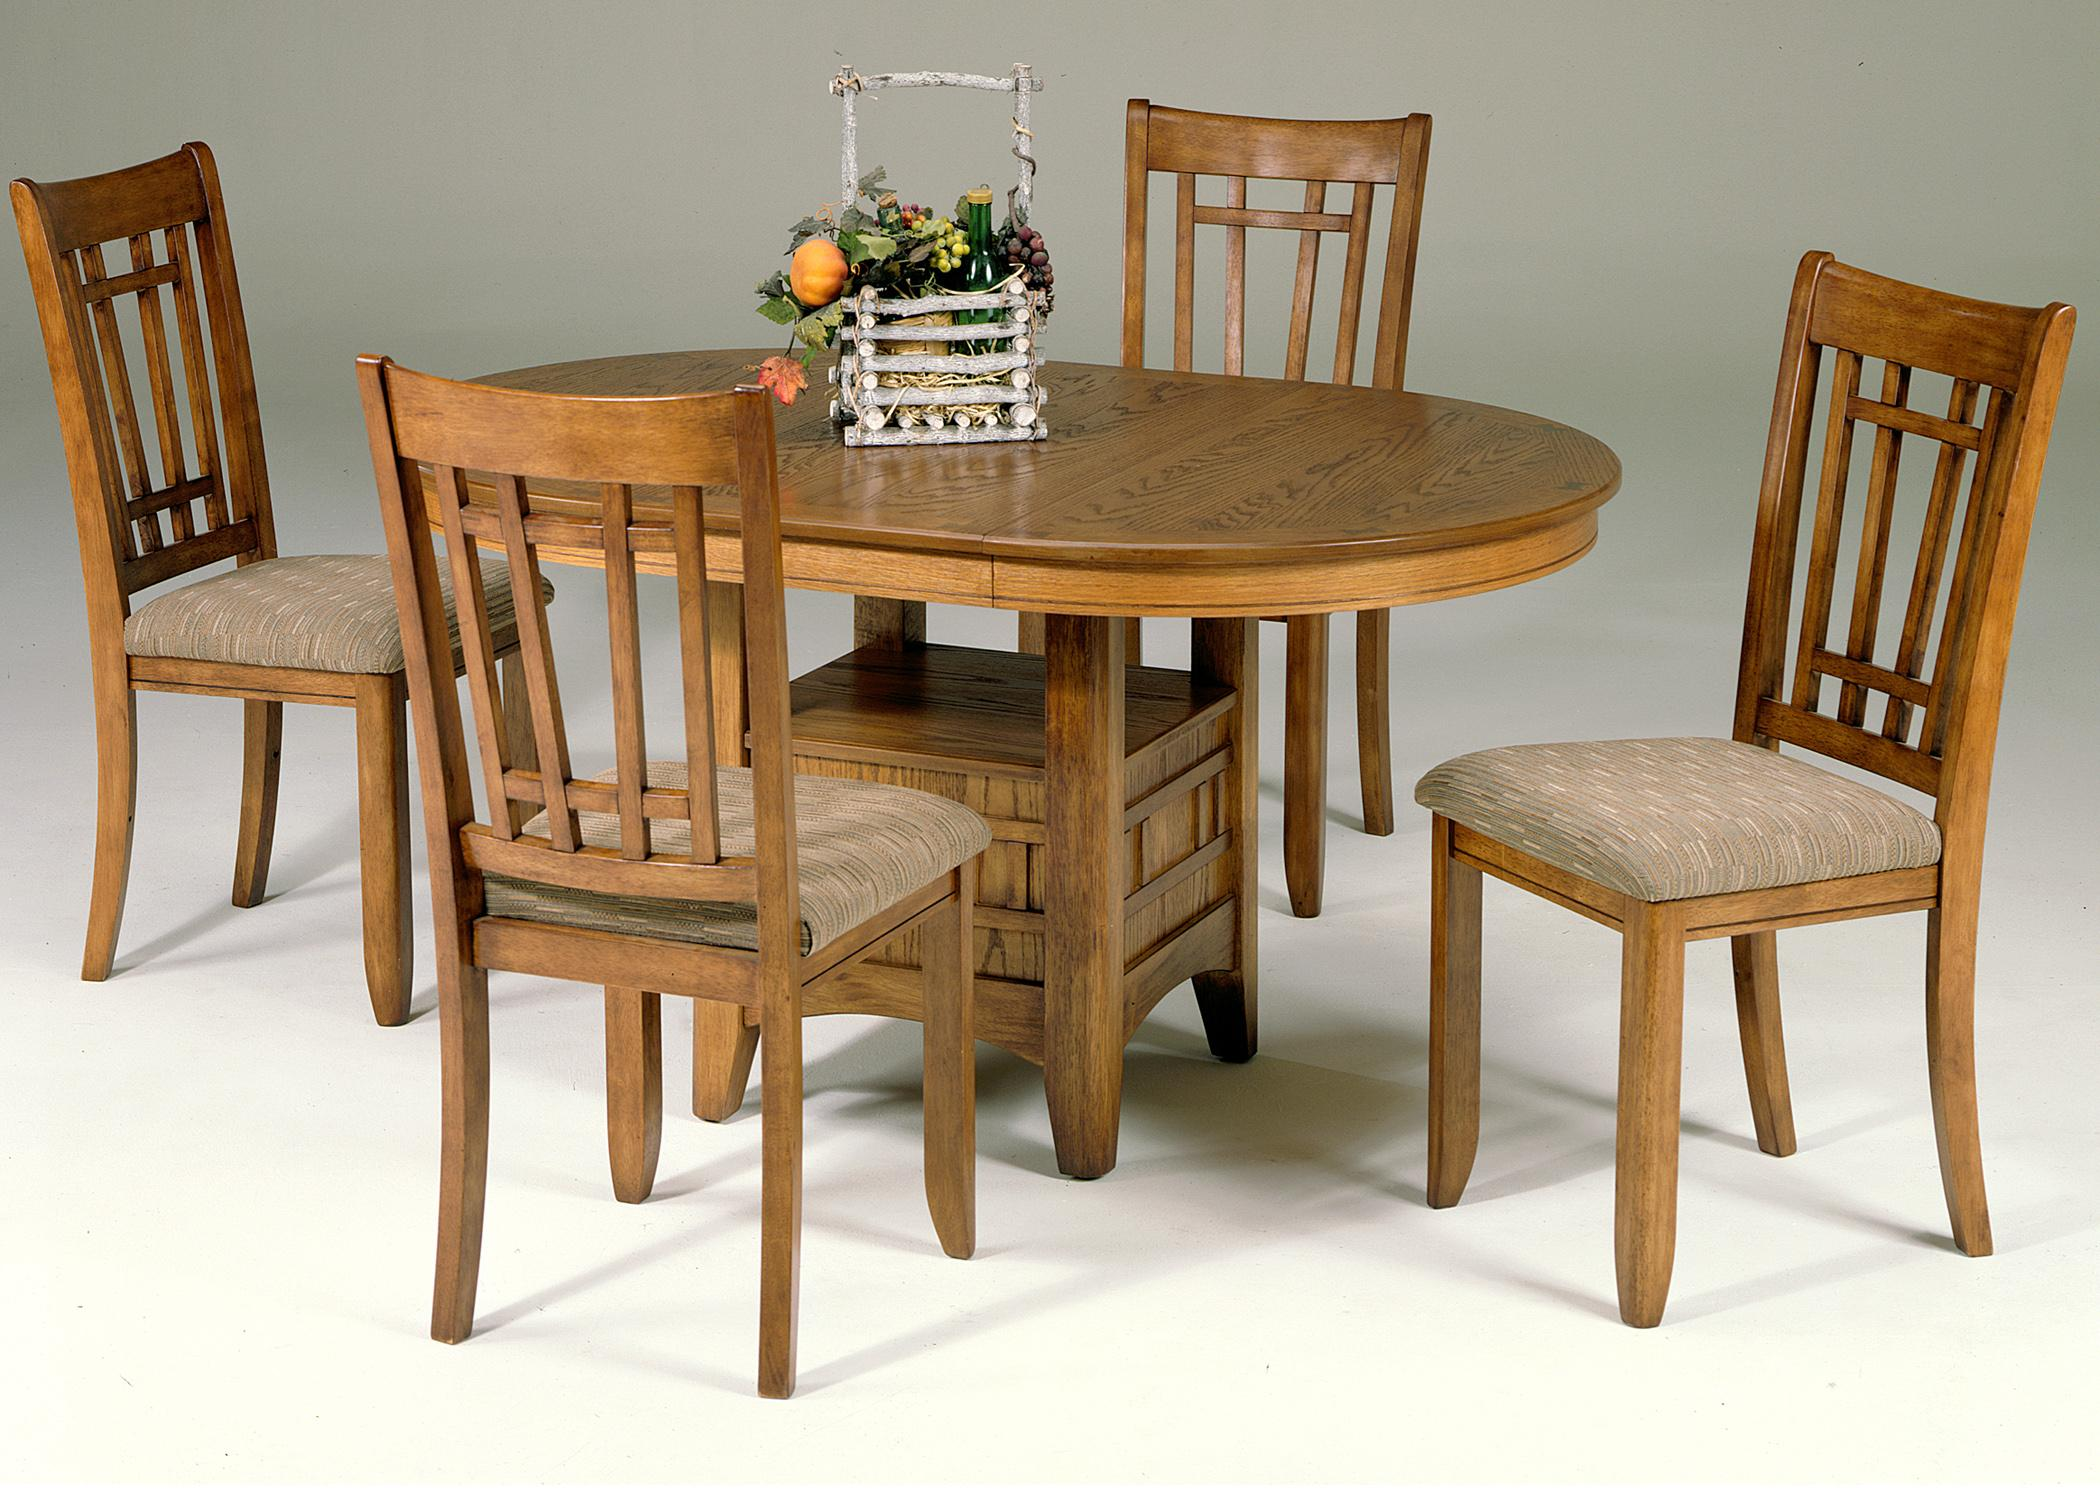 Liberty Furniture Santa Rosa 5 Piece Pedestal Table Set w 4